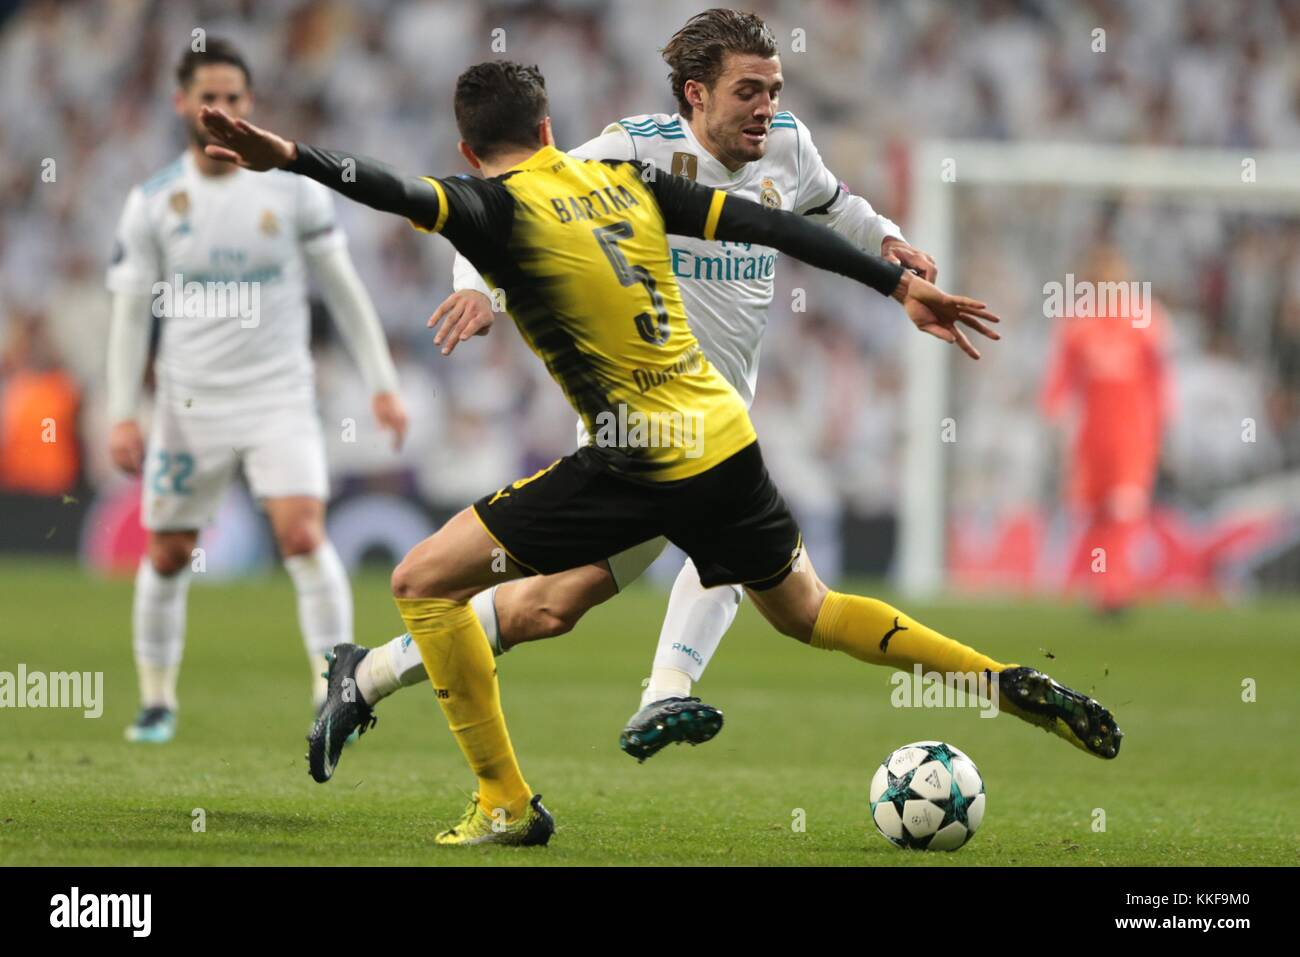 Madrid. 6th Dec, 2017. Mateo Kovacic(R) of Real Madrid breaks through during the UEFA Champions League group H football - Stock Image